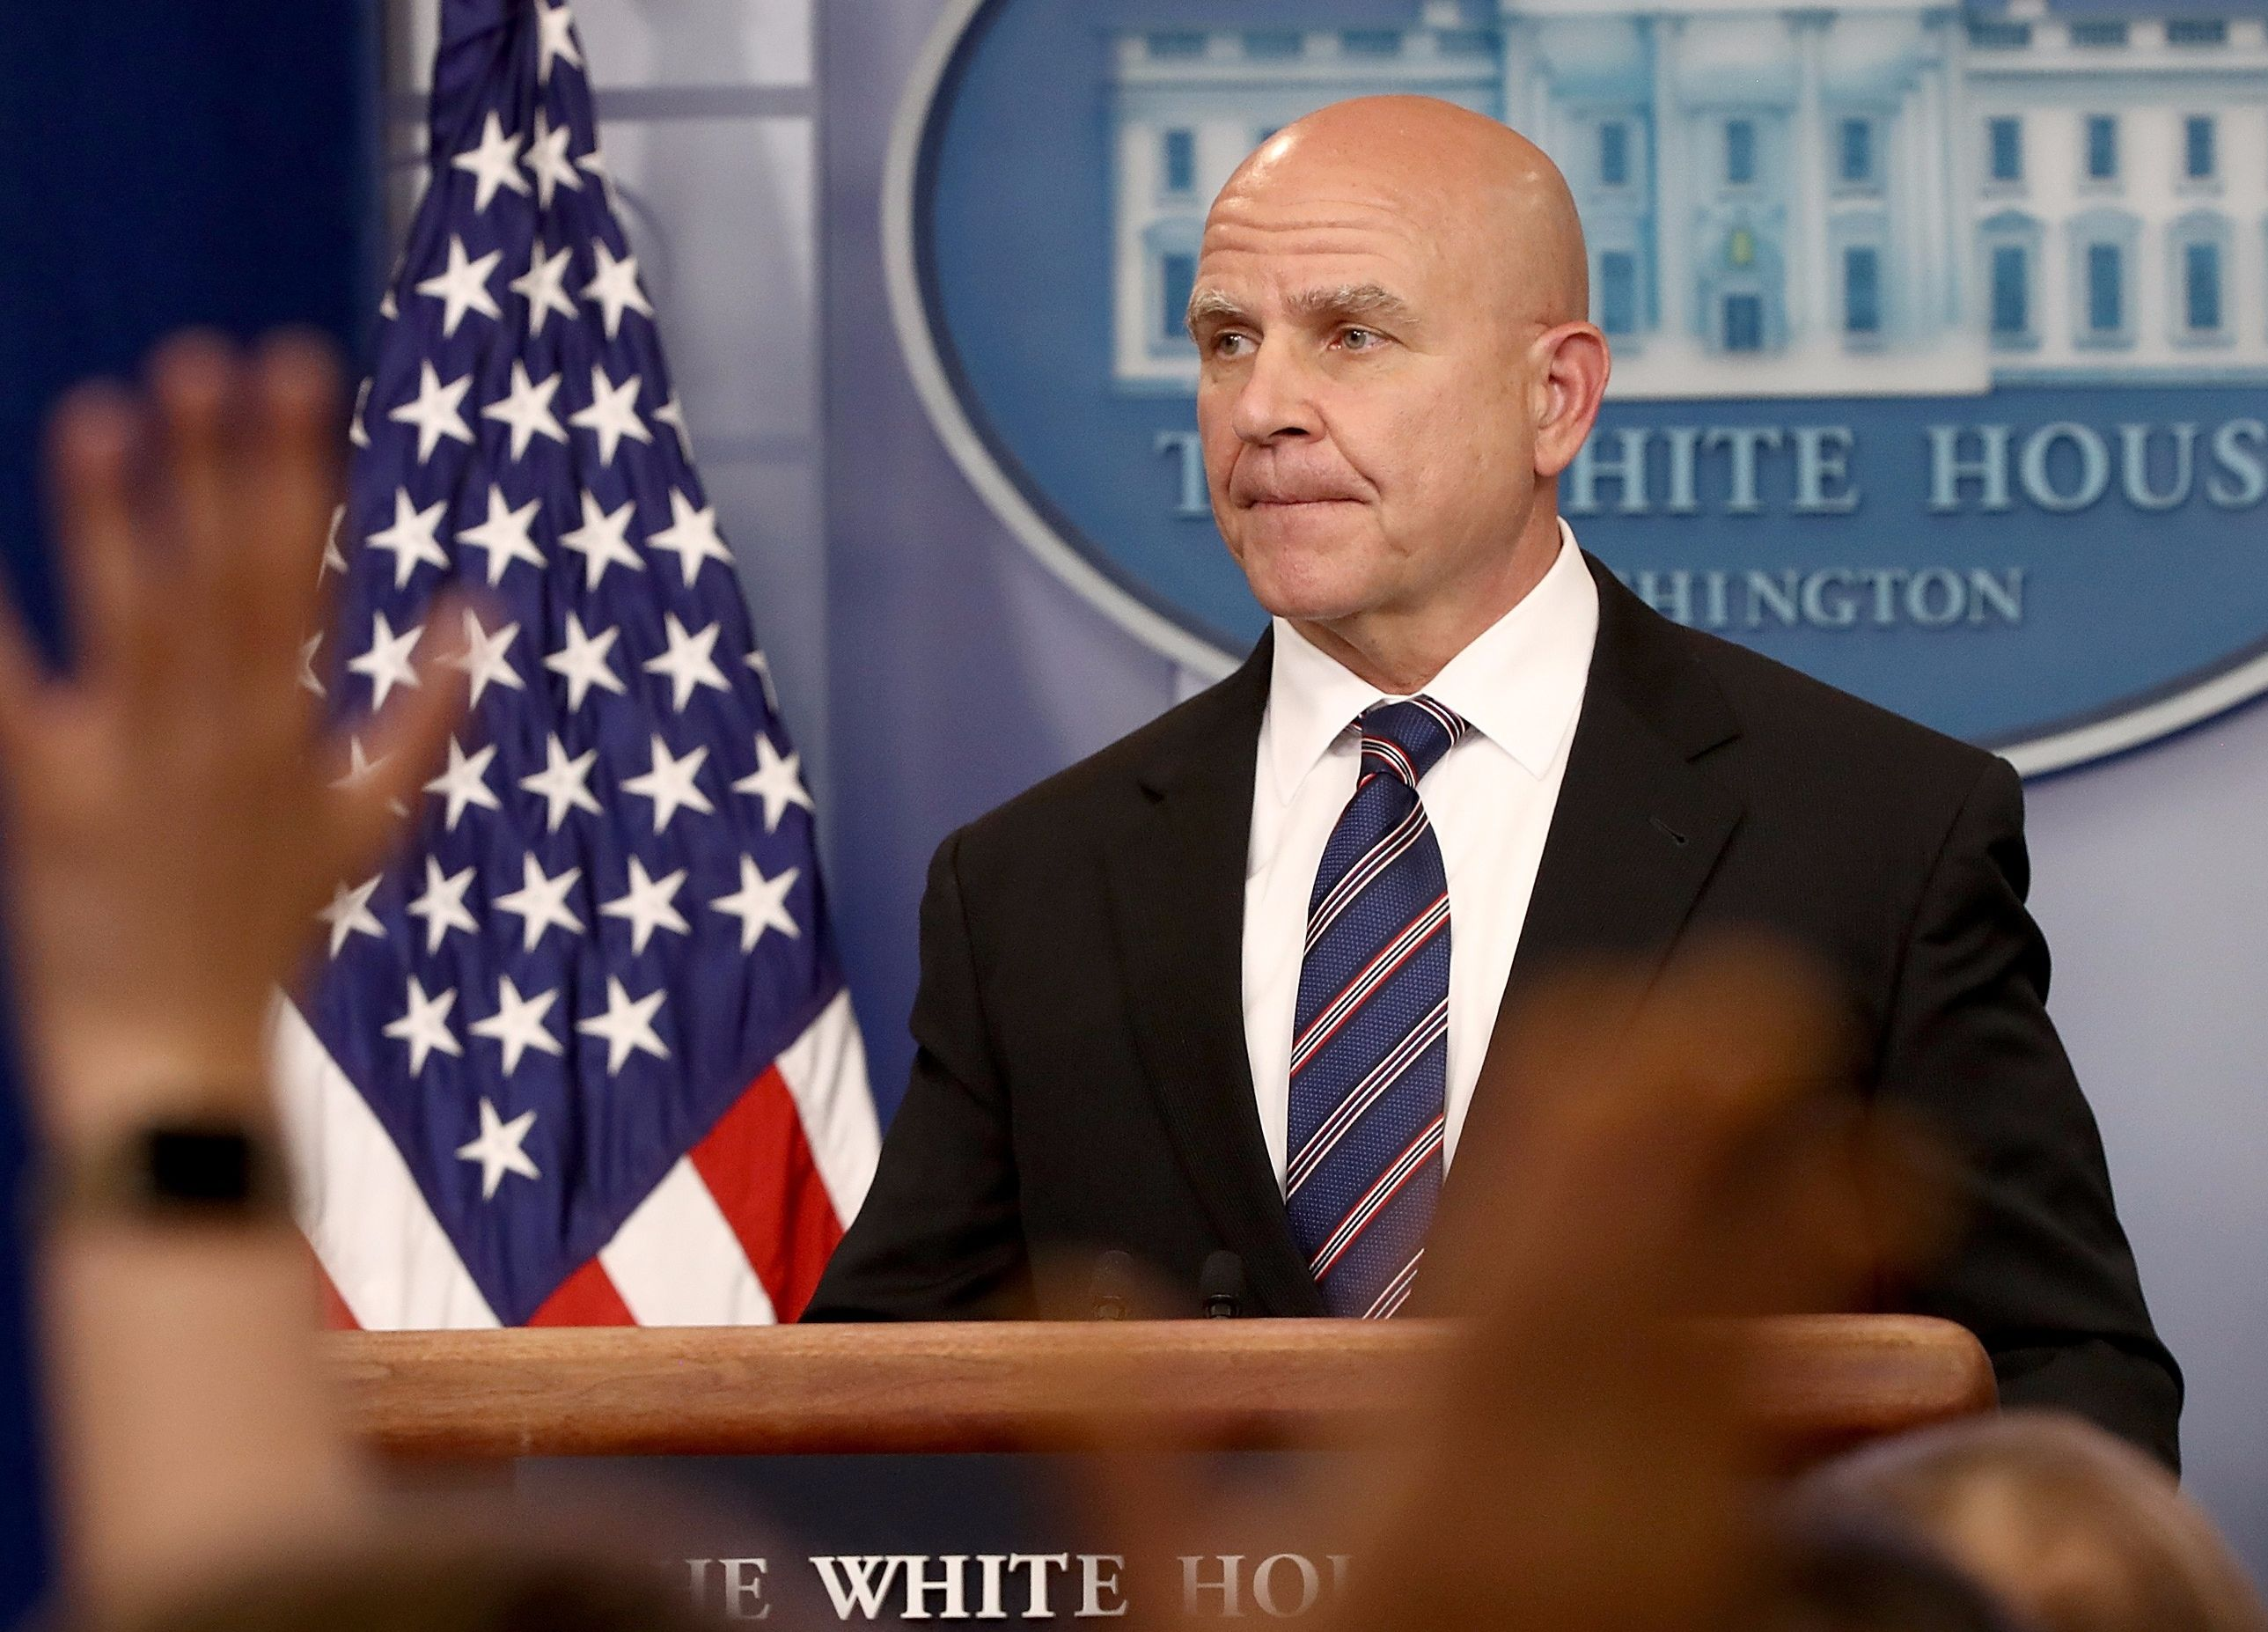 National security advisor takes dig at Trump's intelligence